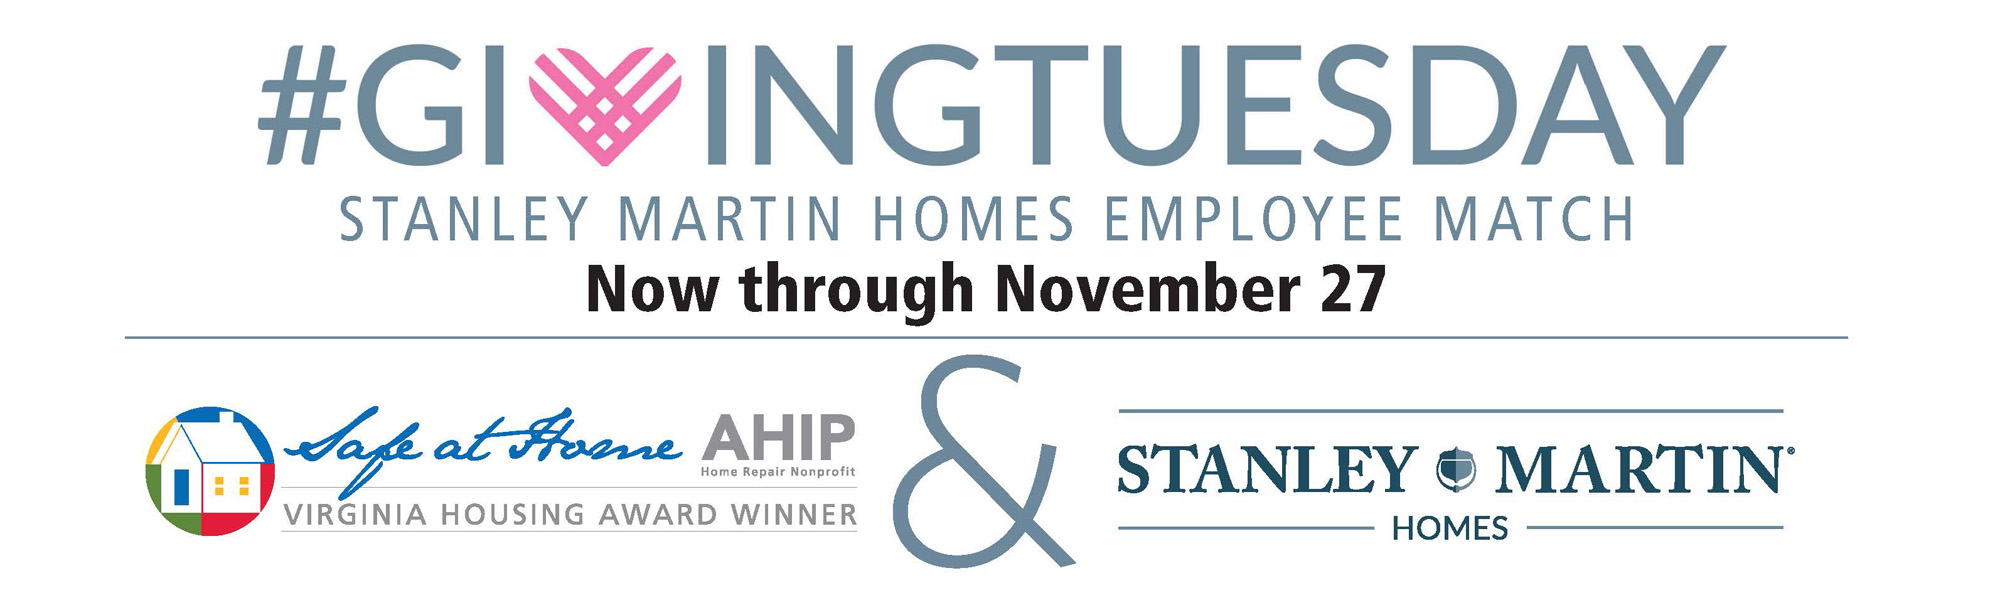 #GivingTuesday Stanley Martin Employee Match